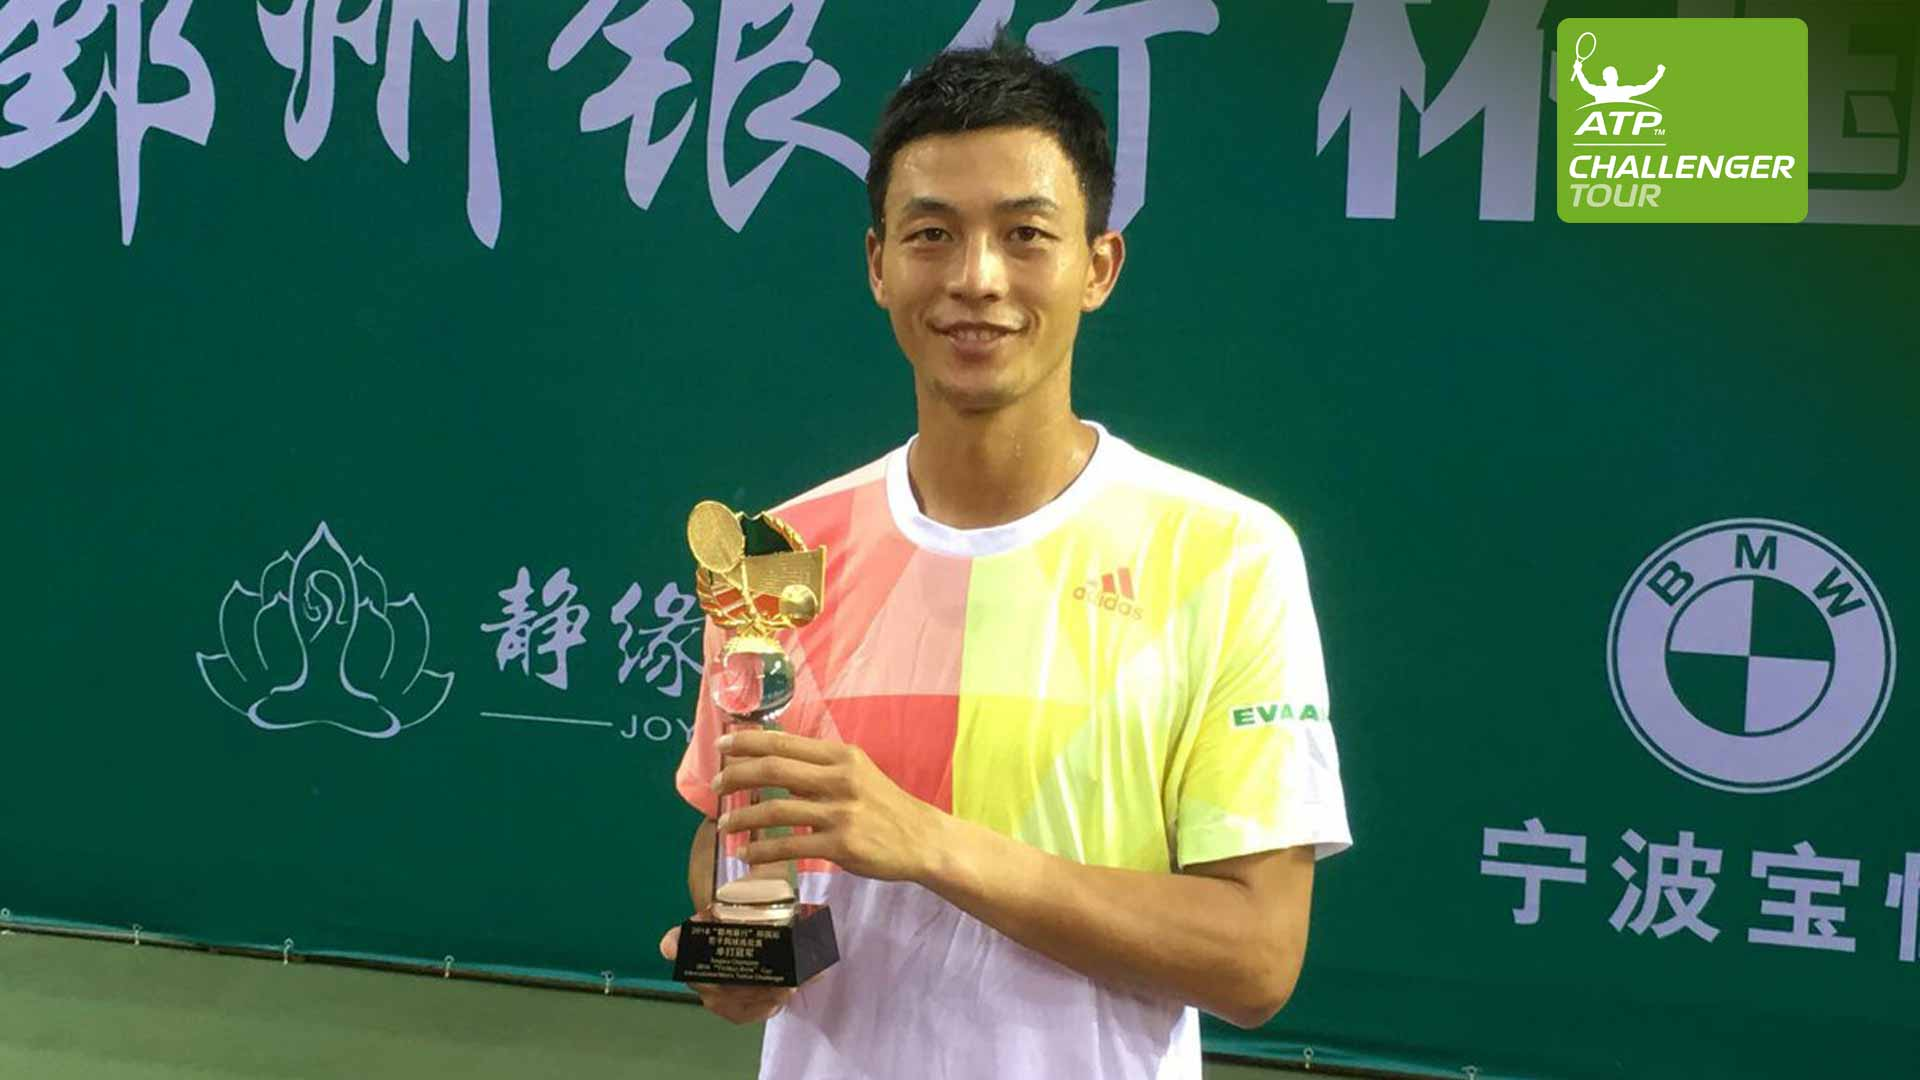 Yen-Hsun Lu wins his 25th ATP Challenger Tour title in Ningbo.